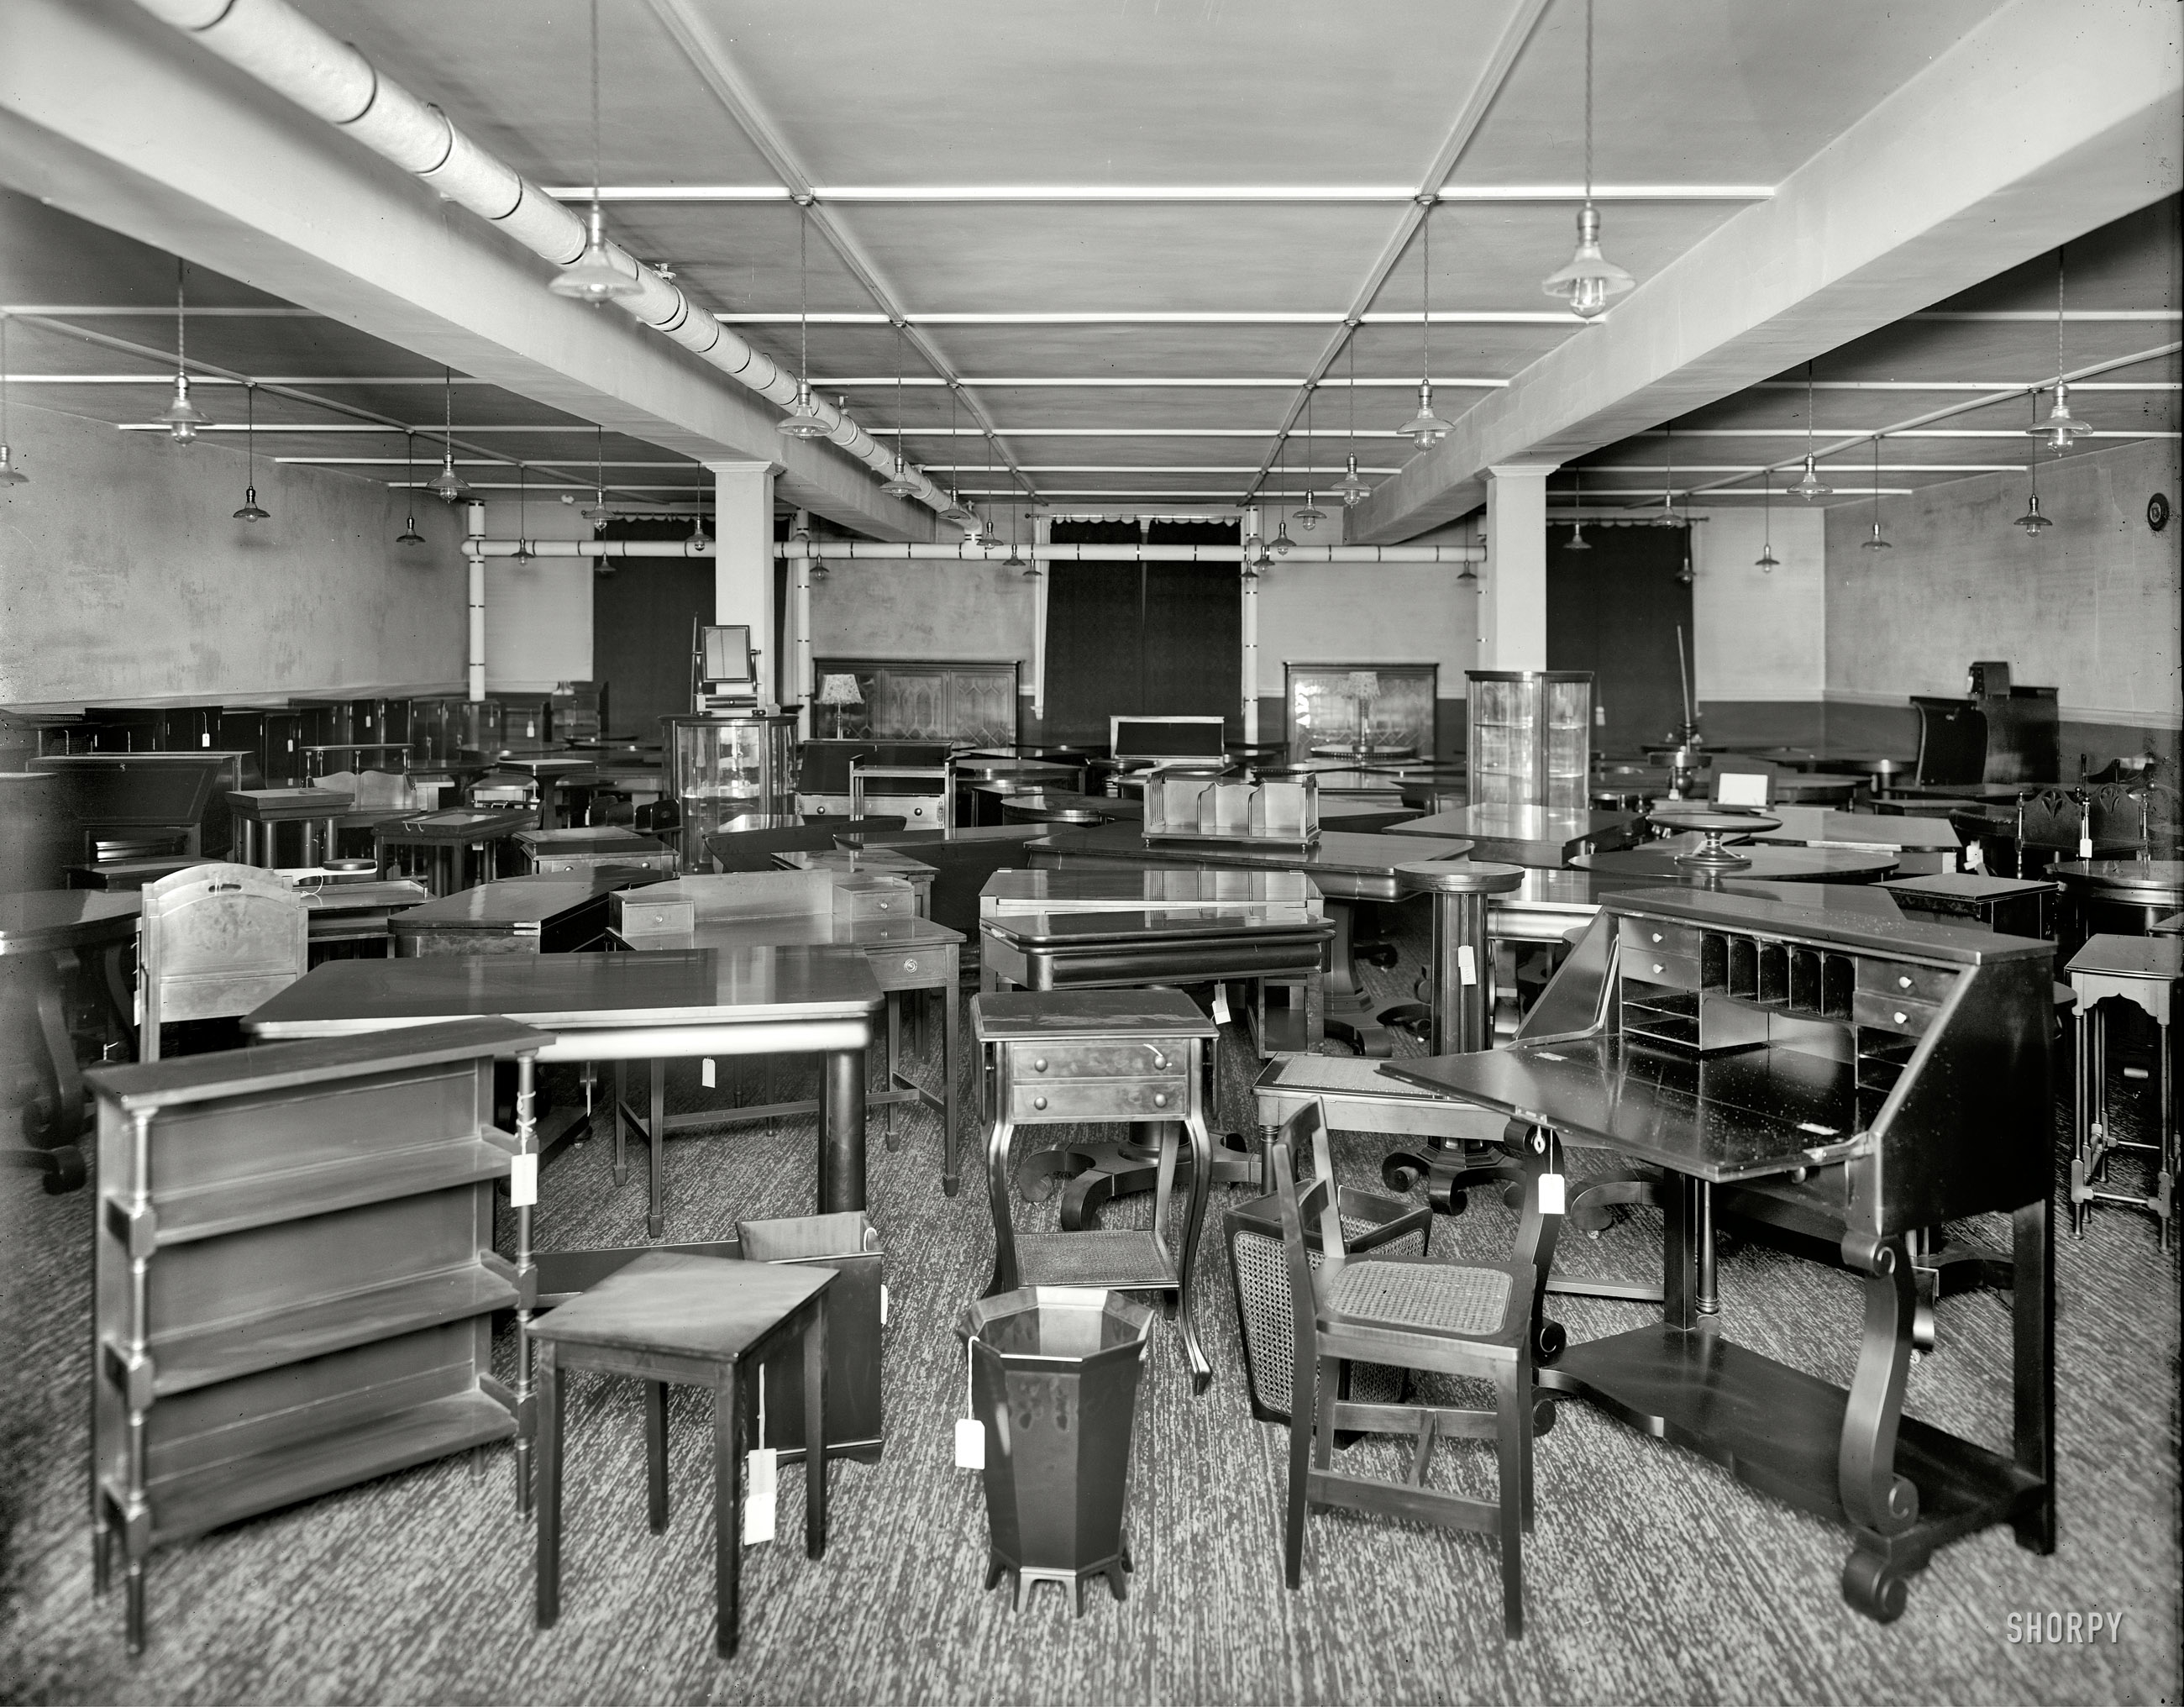 Detroit, Michigan, Circa 1912. U201cPringle Furniture Co. Showroom With Tables  And Miscellaneous Furniture.u201d Our Second Peek Behind The Scenes At This  Eerily ...